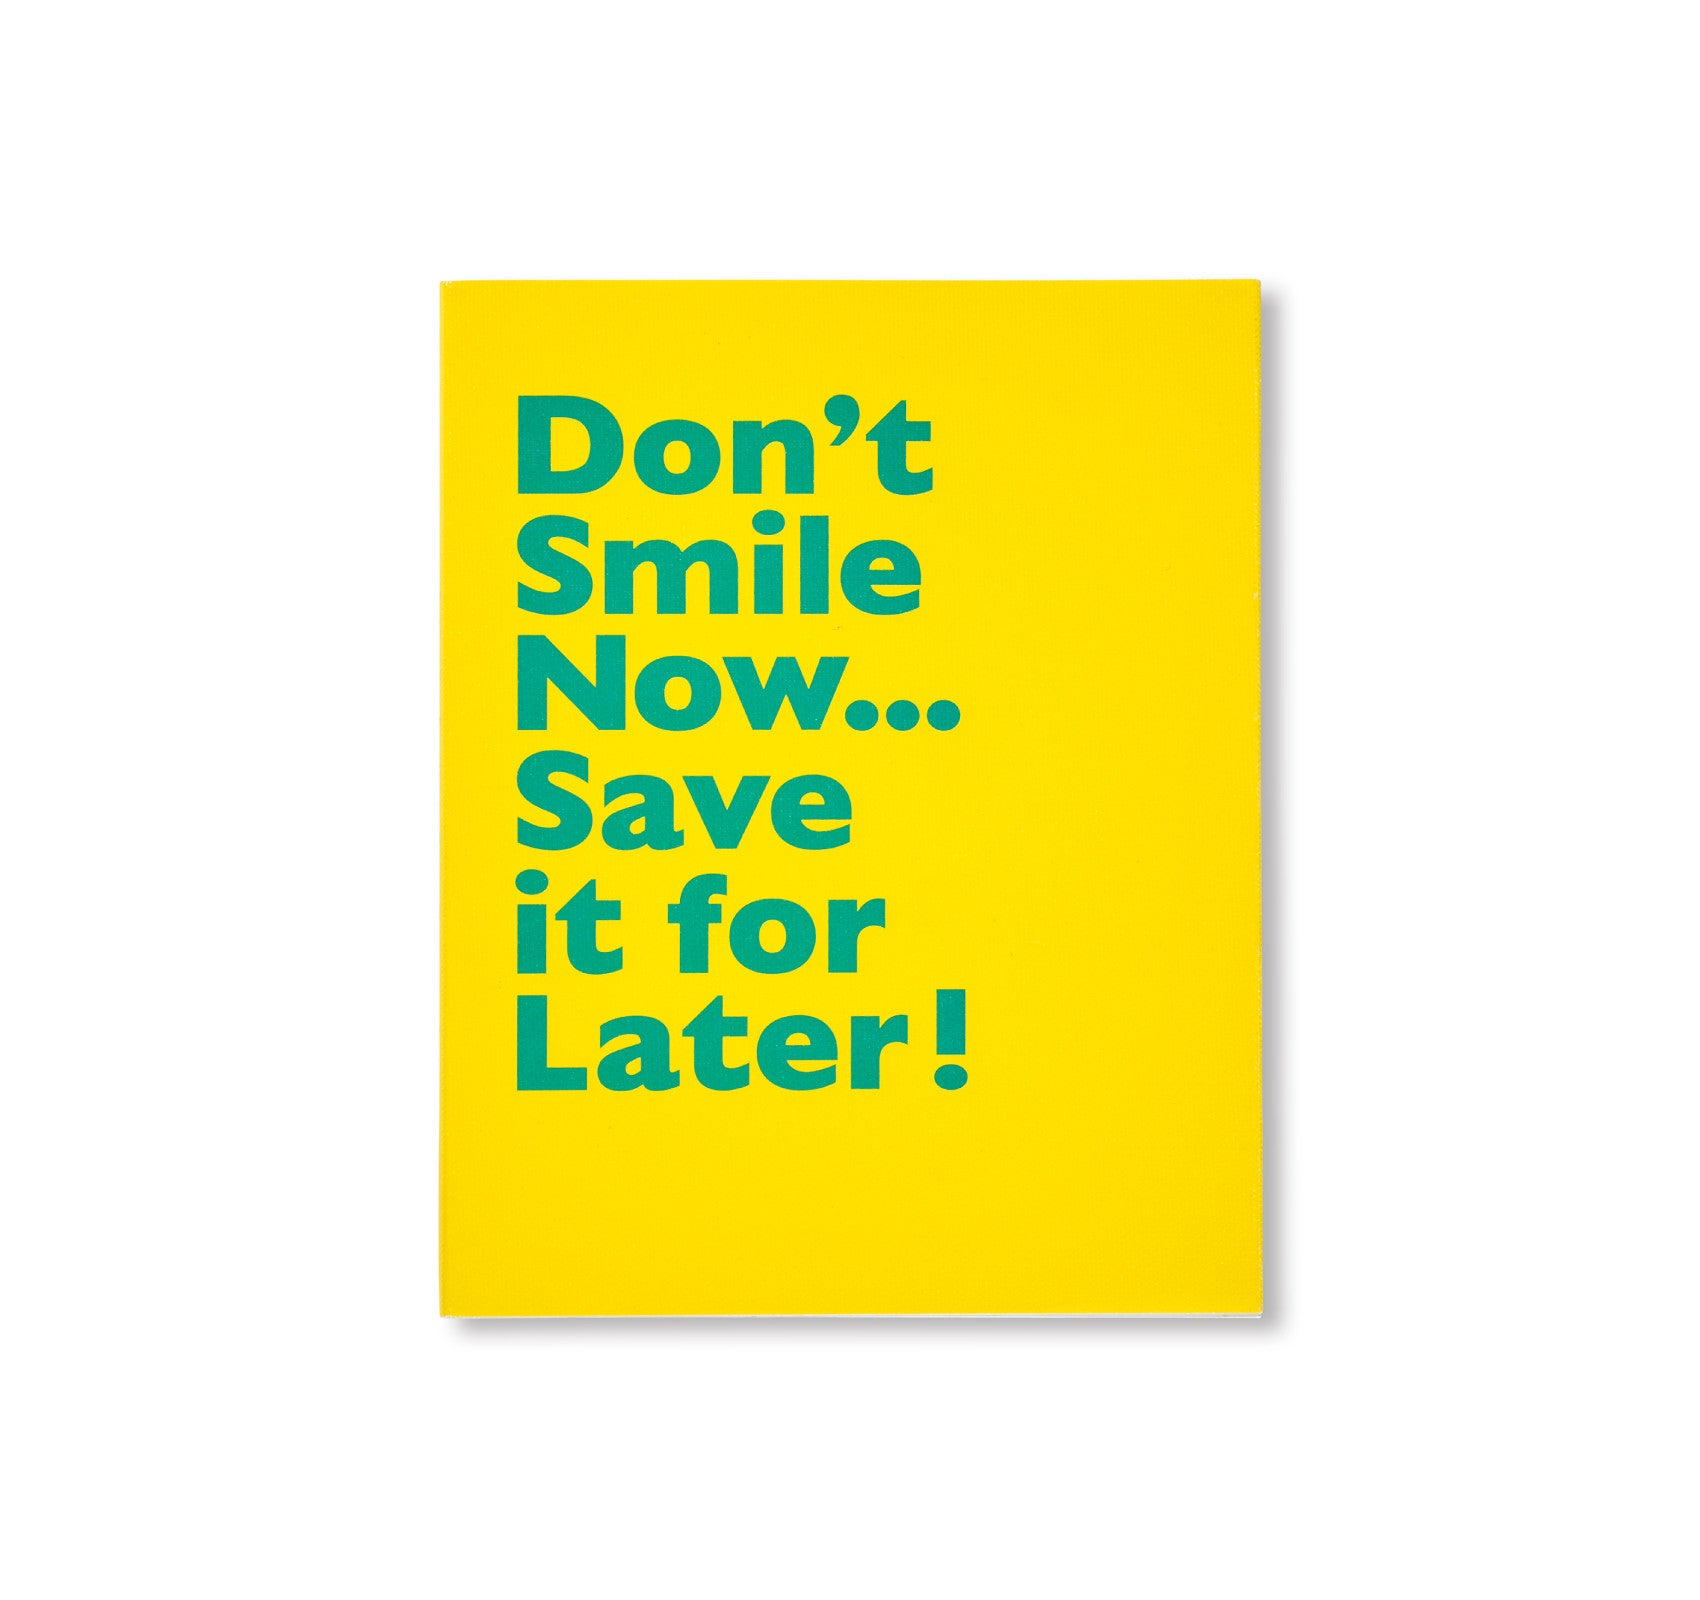 DON'T SMILE NOW ... SAVE IT FOR LATER by Thijs groot Wassink